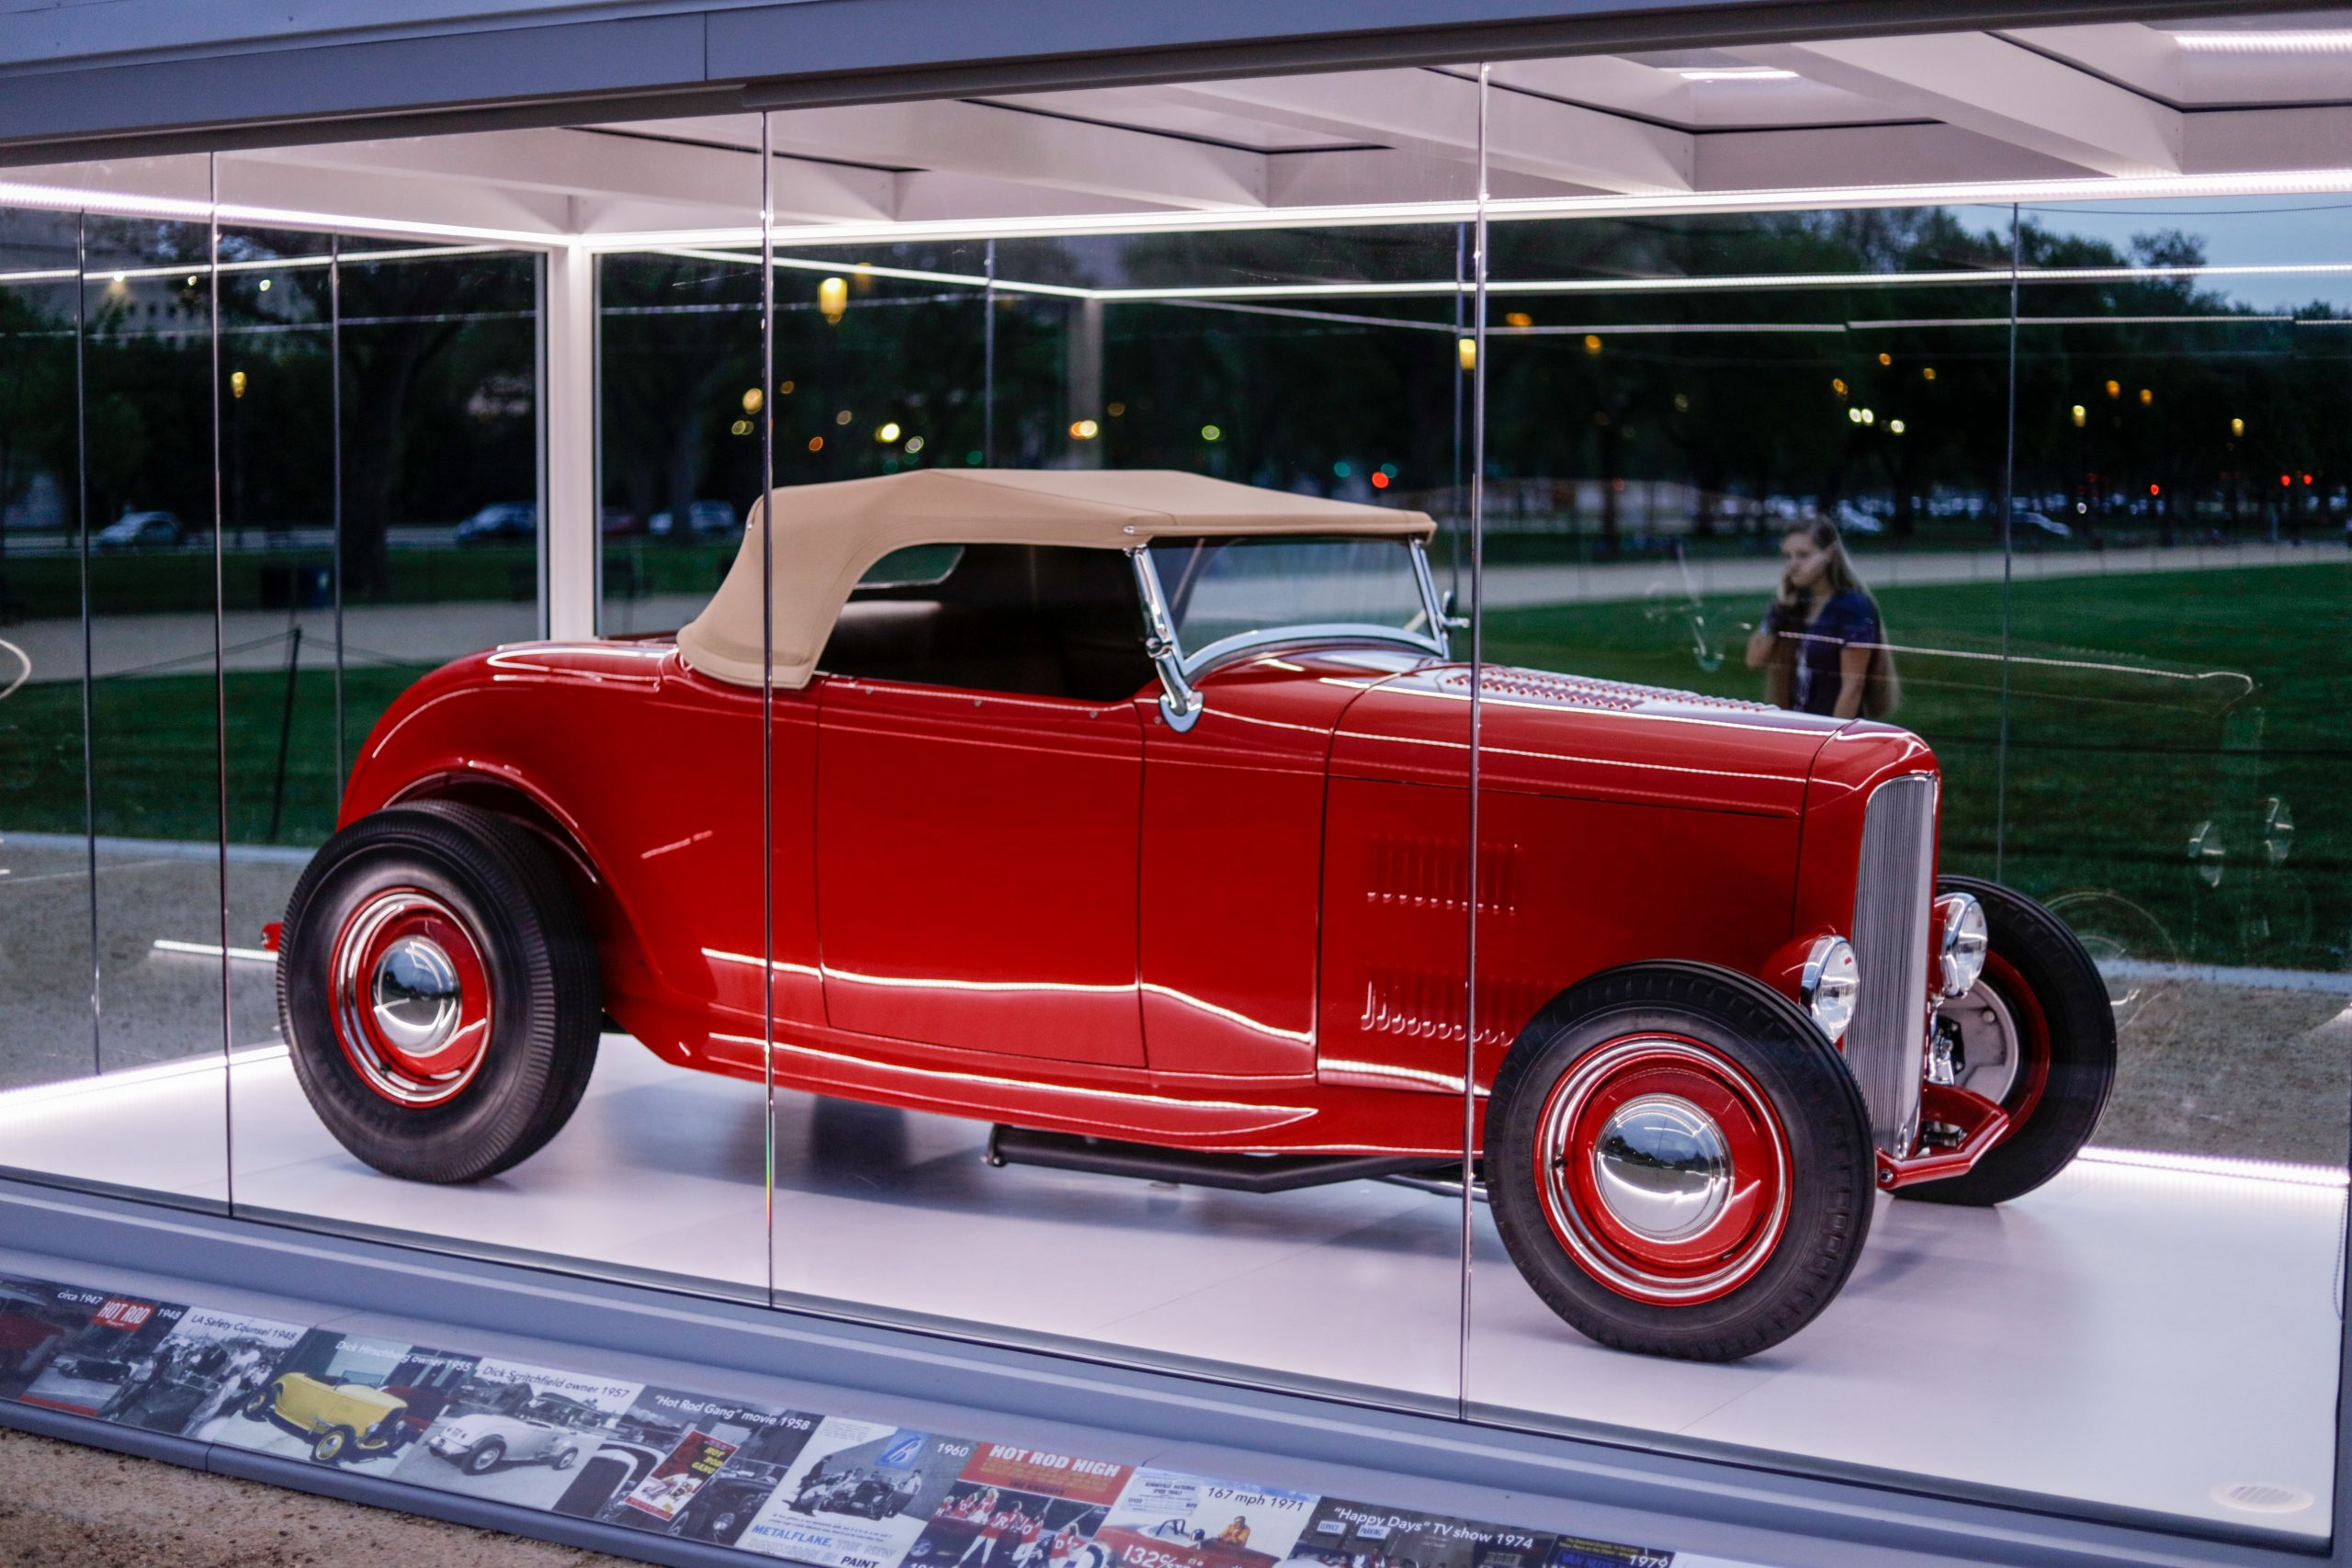 McGee Roadster - 1932 Ford - HVA Cars at the Capital 7